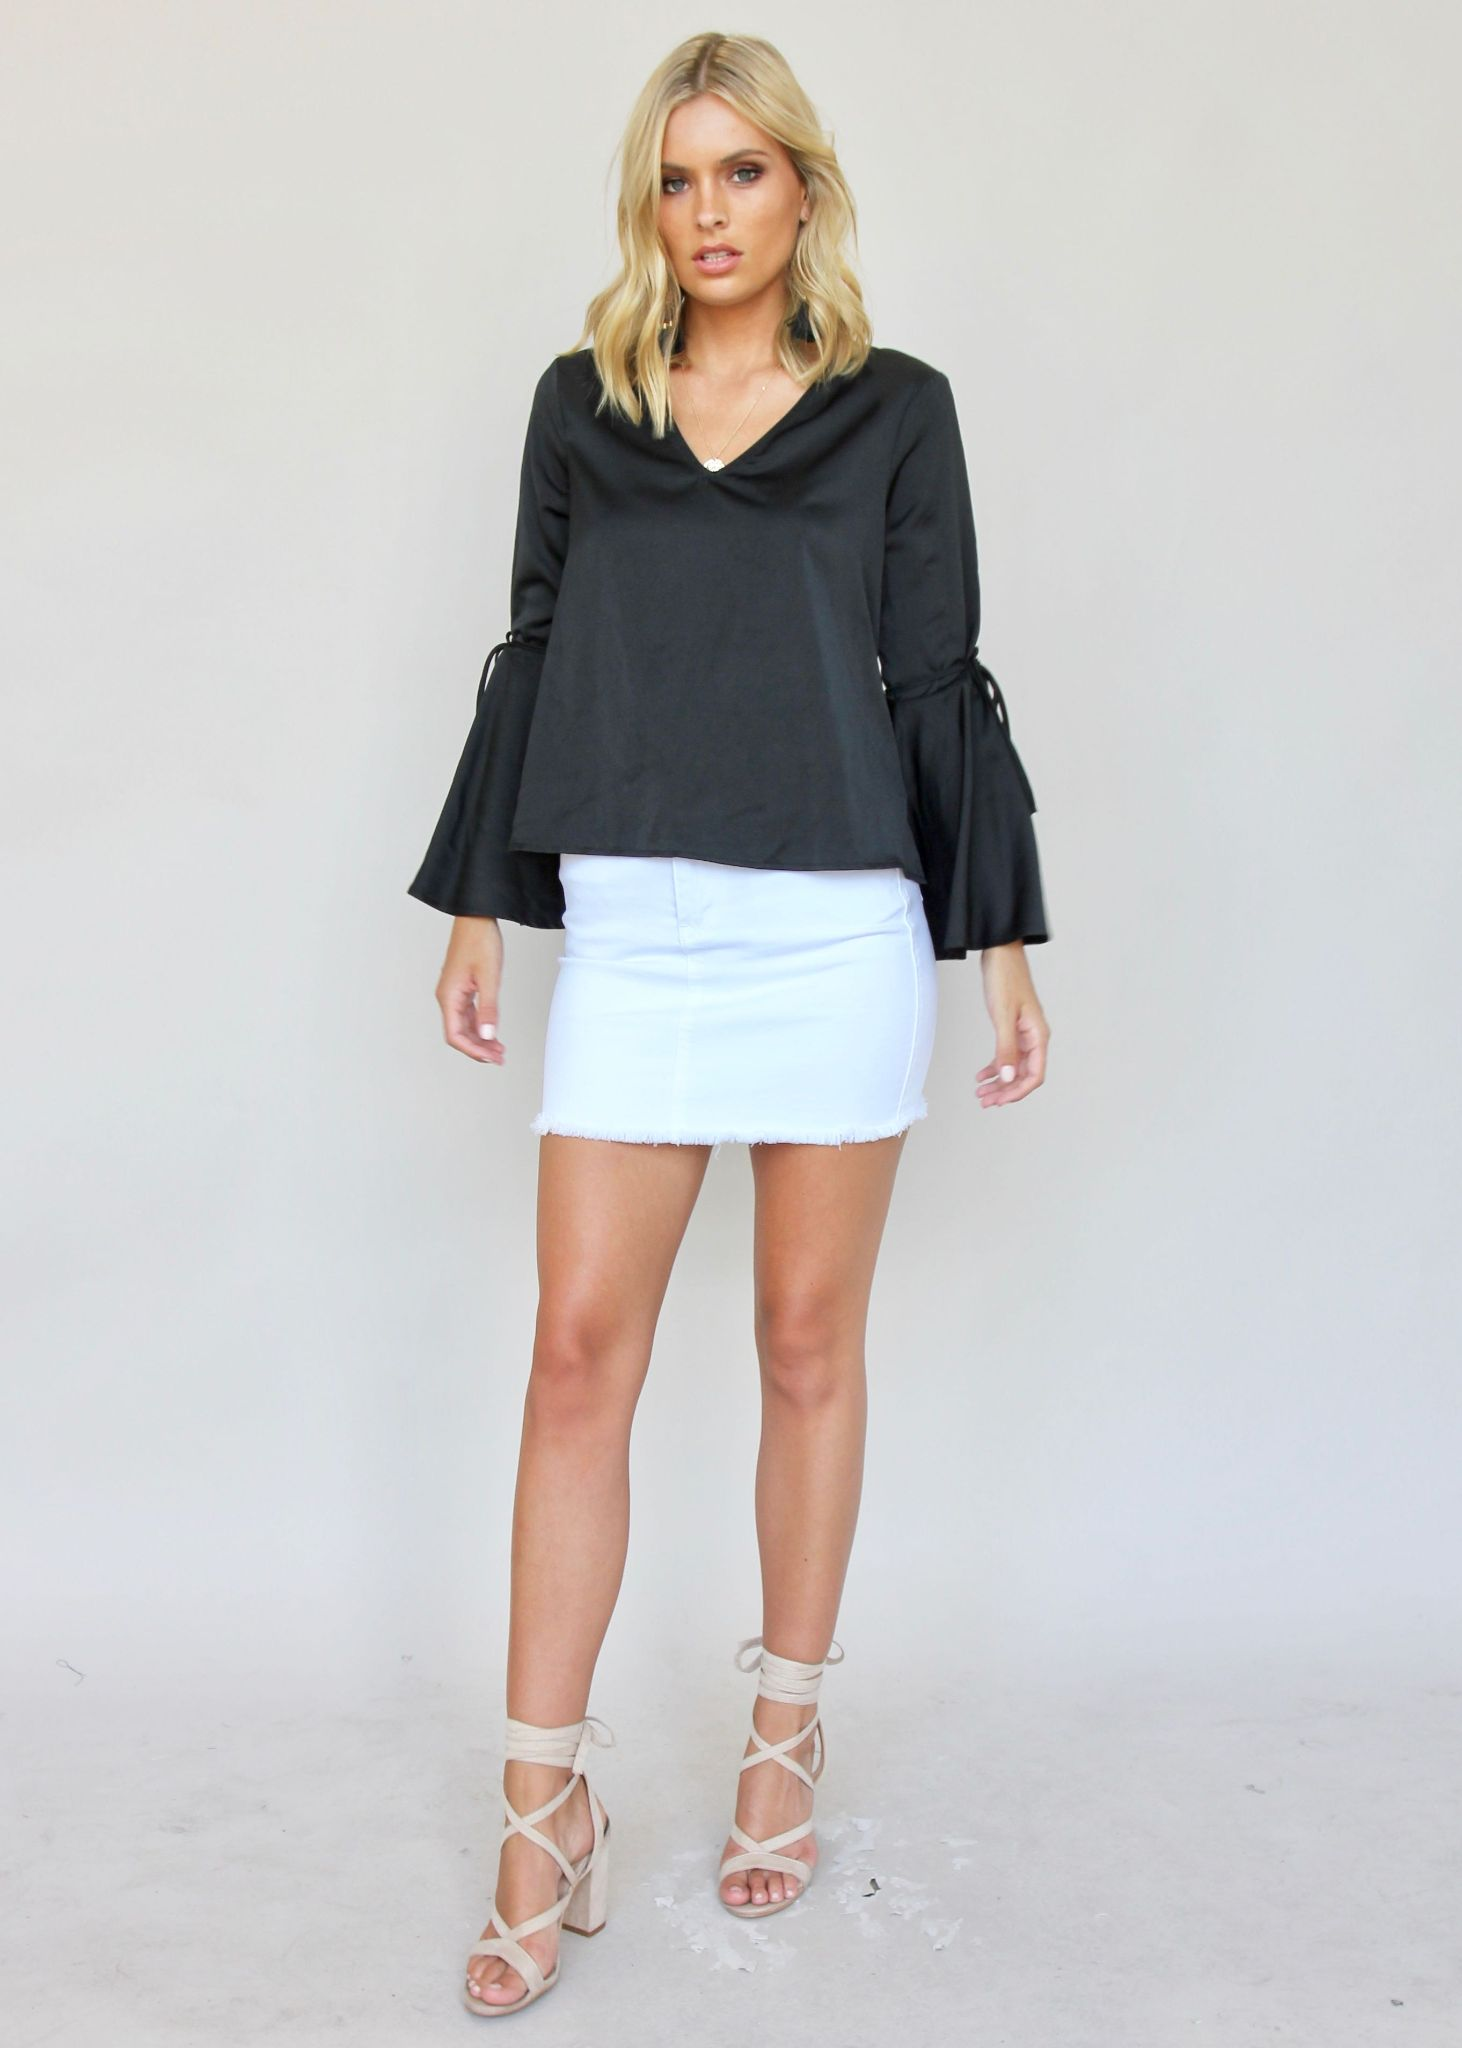 City Girl Blouse - Black